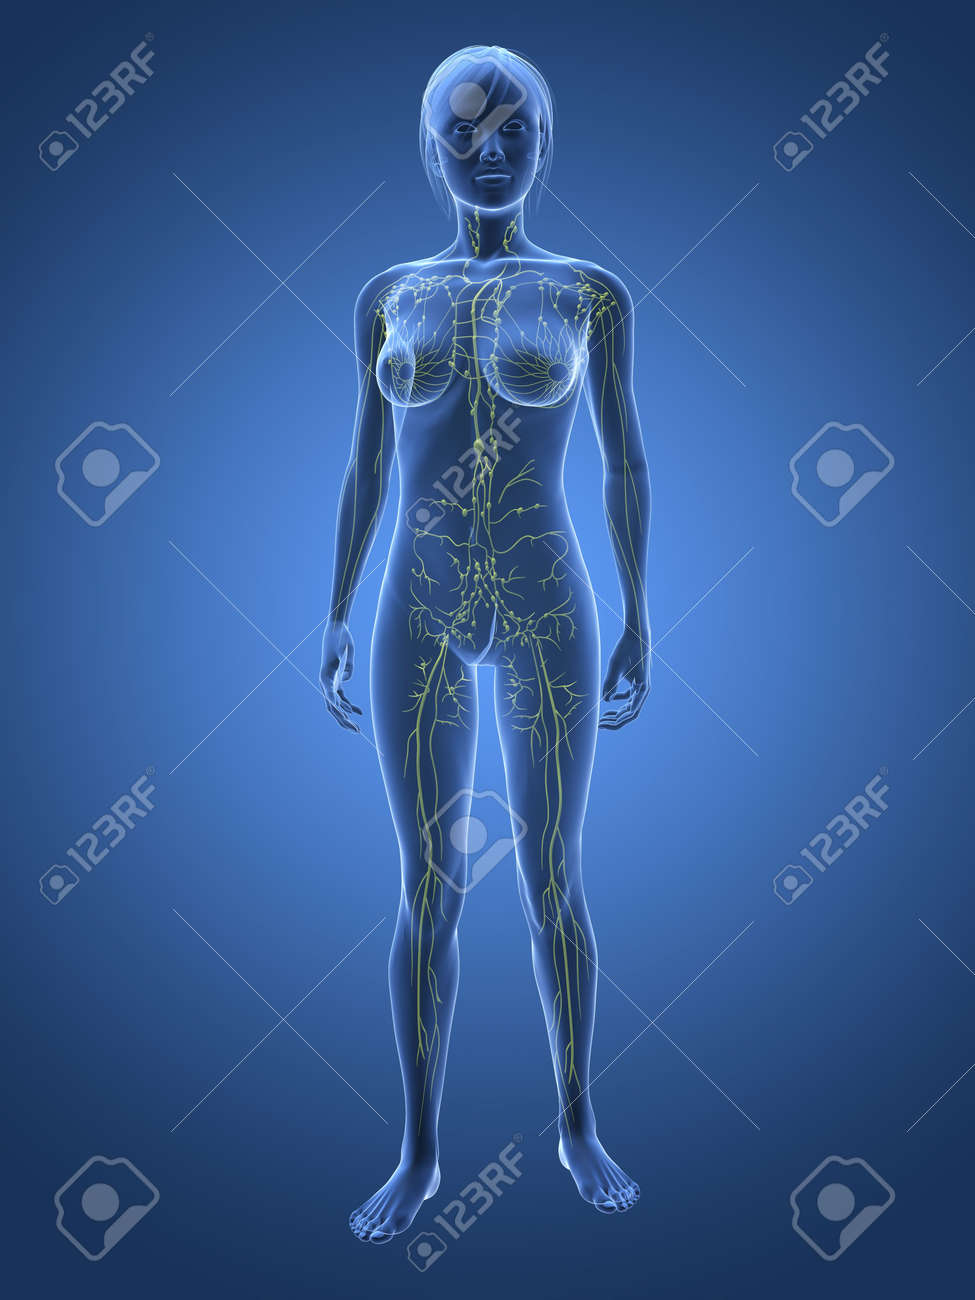 transparent woman - lymphatic system Stock Photo - 6359791